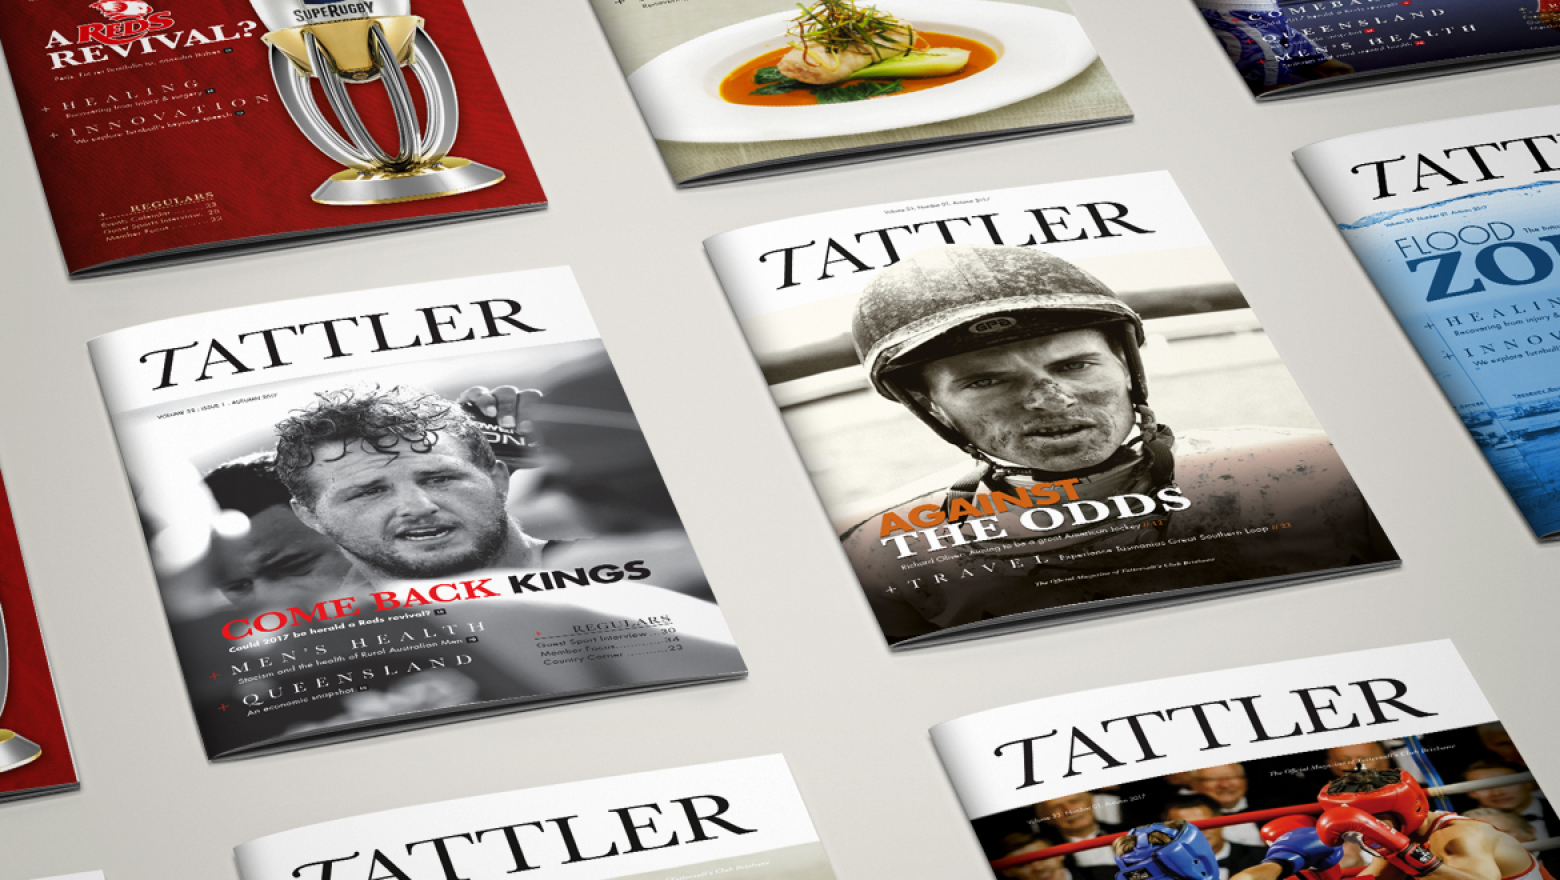 Tattler new cover concepts